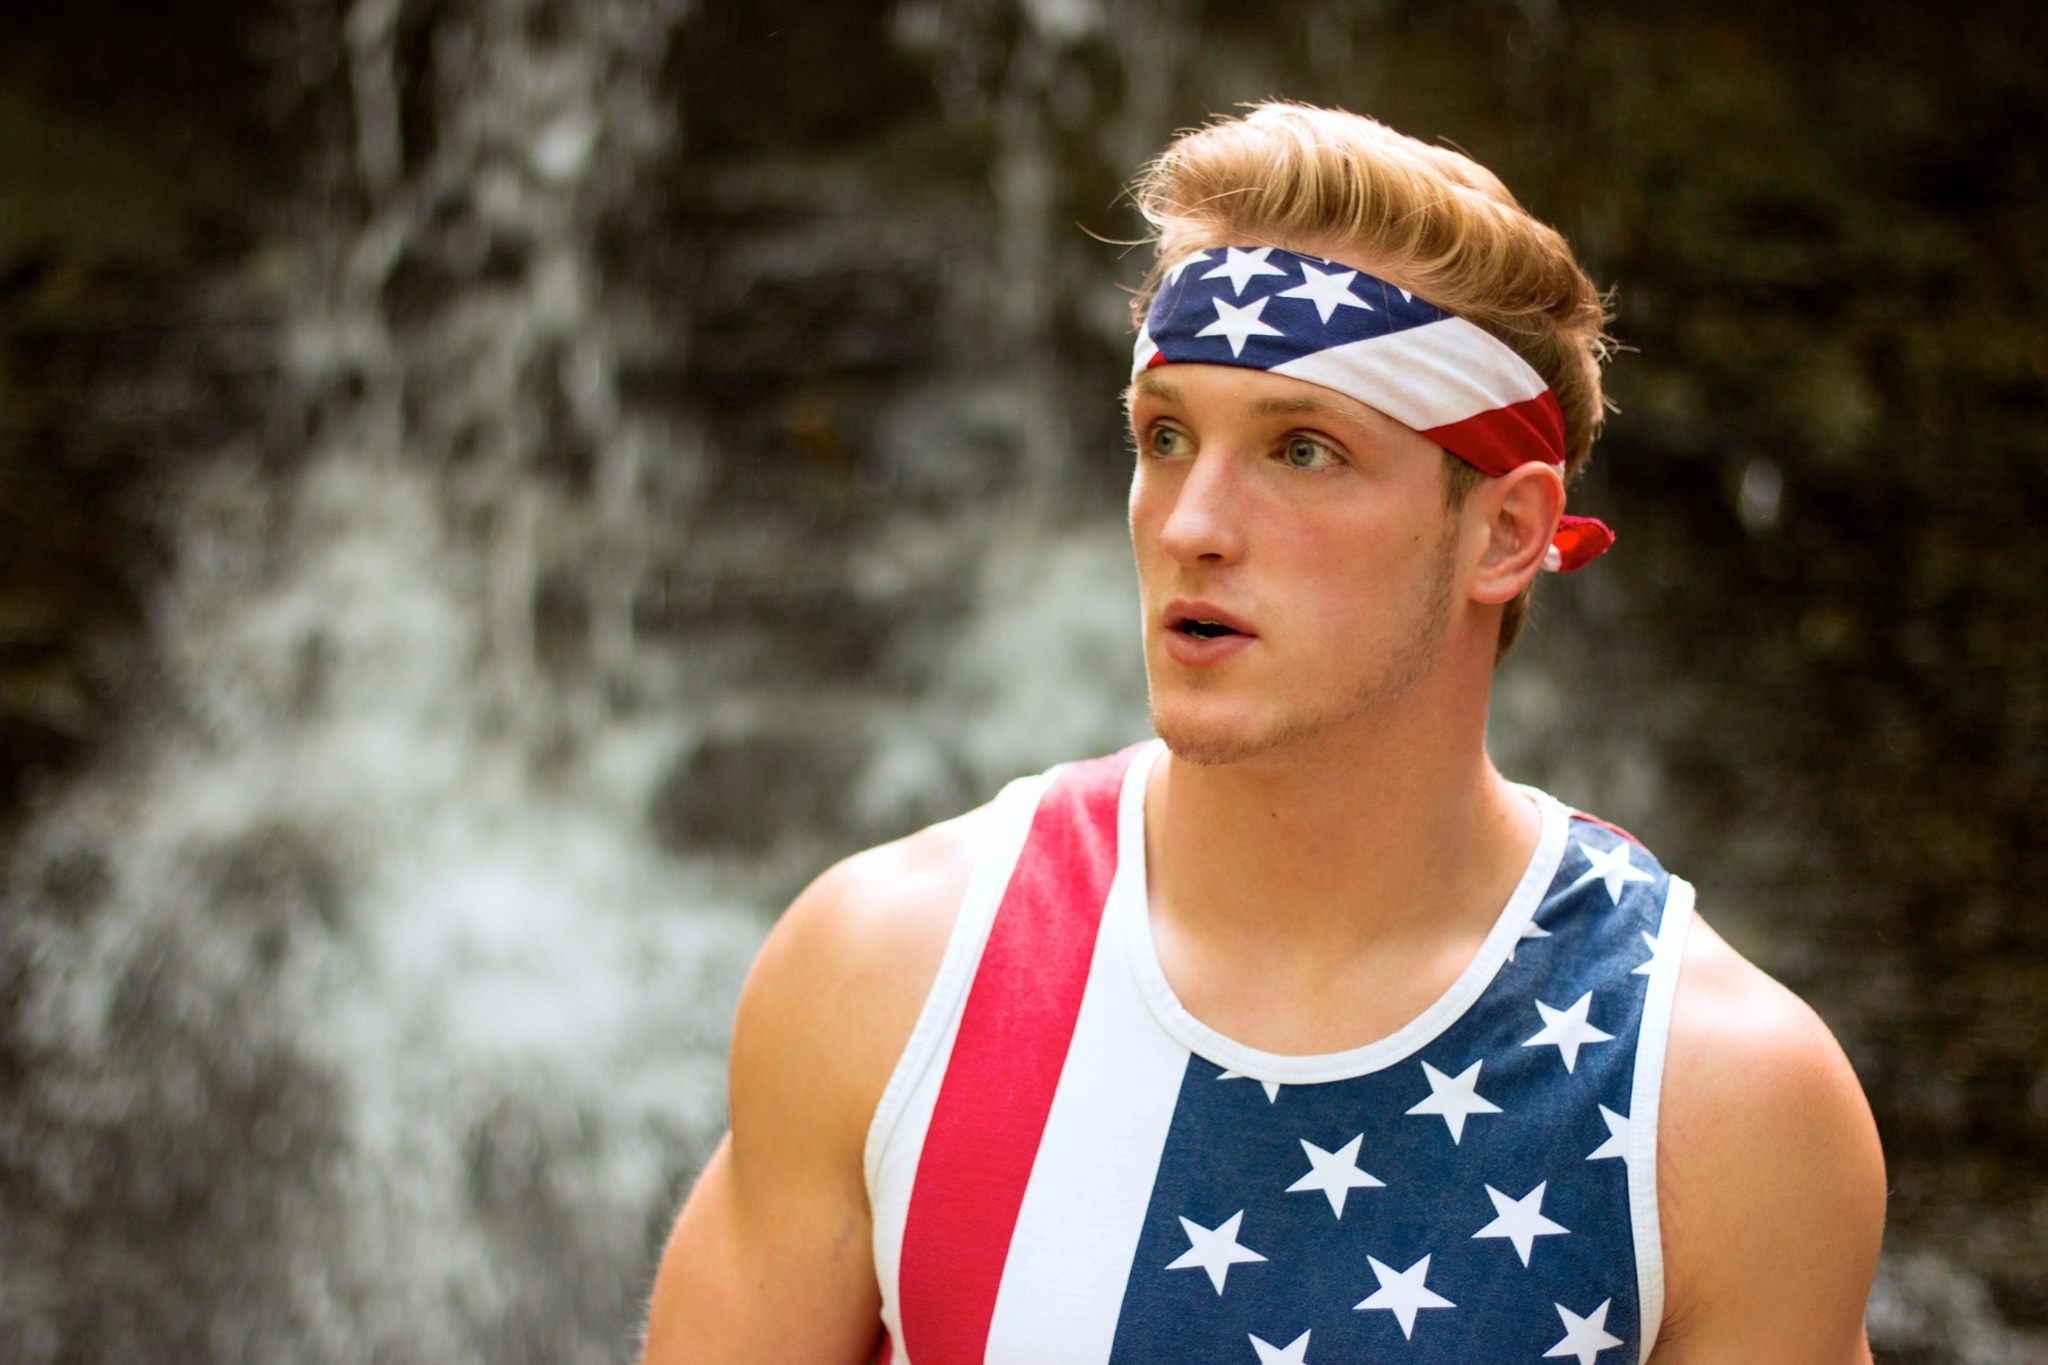 Logan Paul Youtube Widescreen Desktop Wallpaper 1552 2048x1365 px 2048x1365